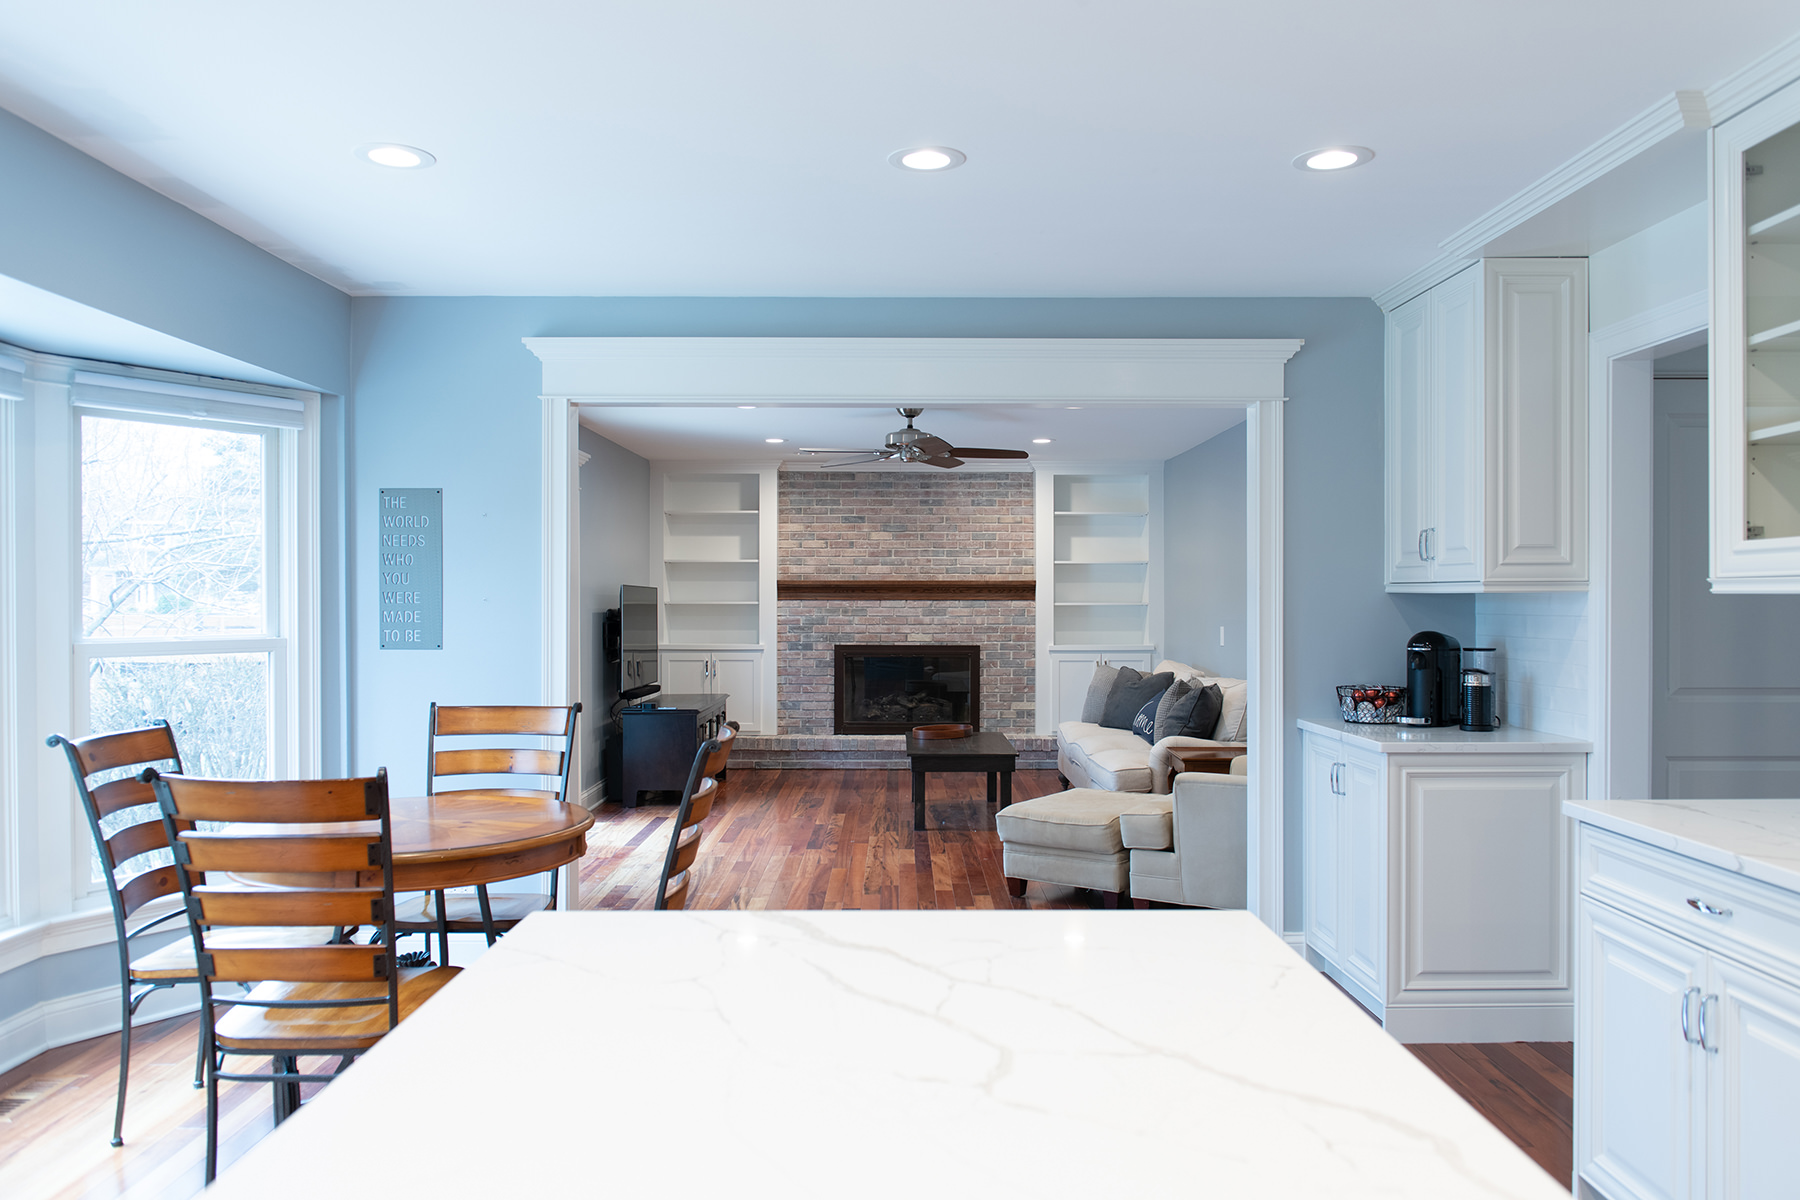 Living room and kitchen remodel in Libertyville, Illinois